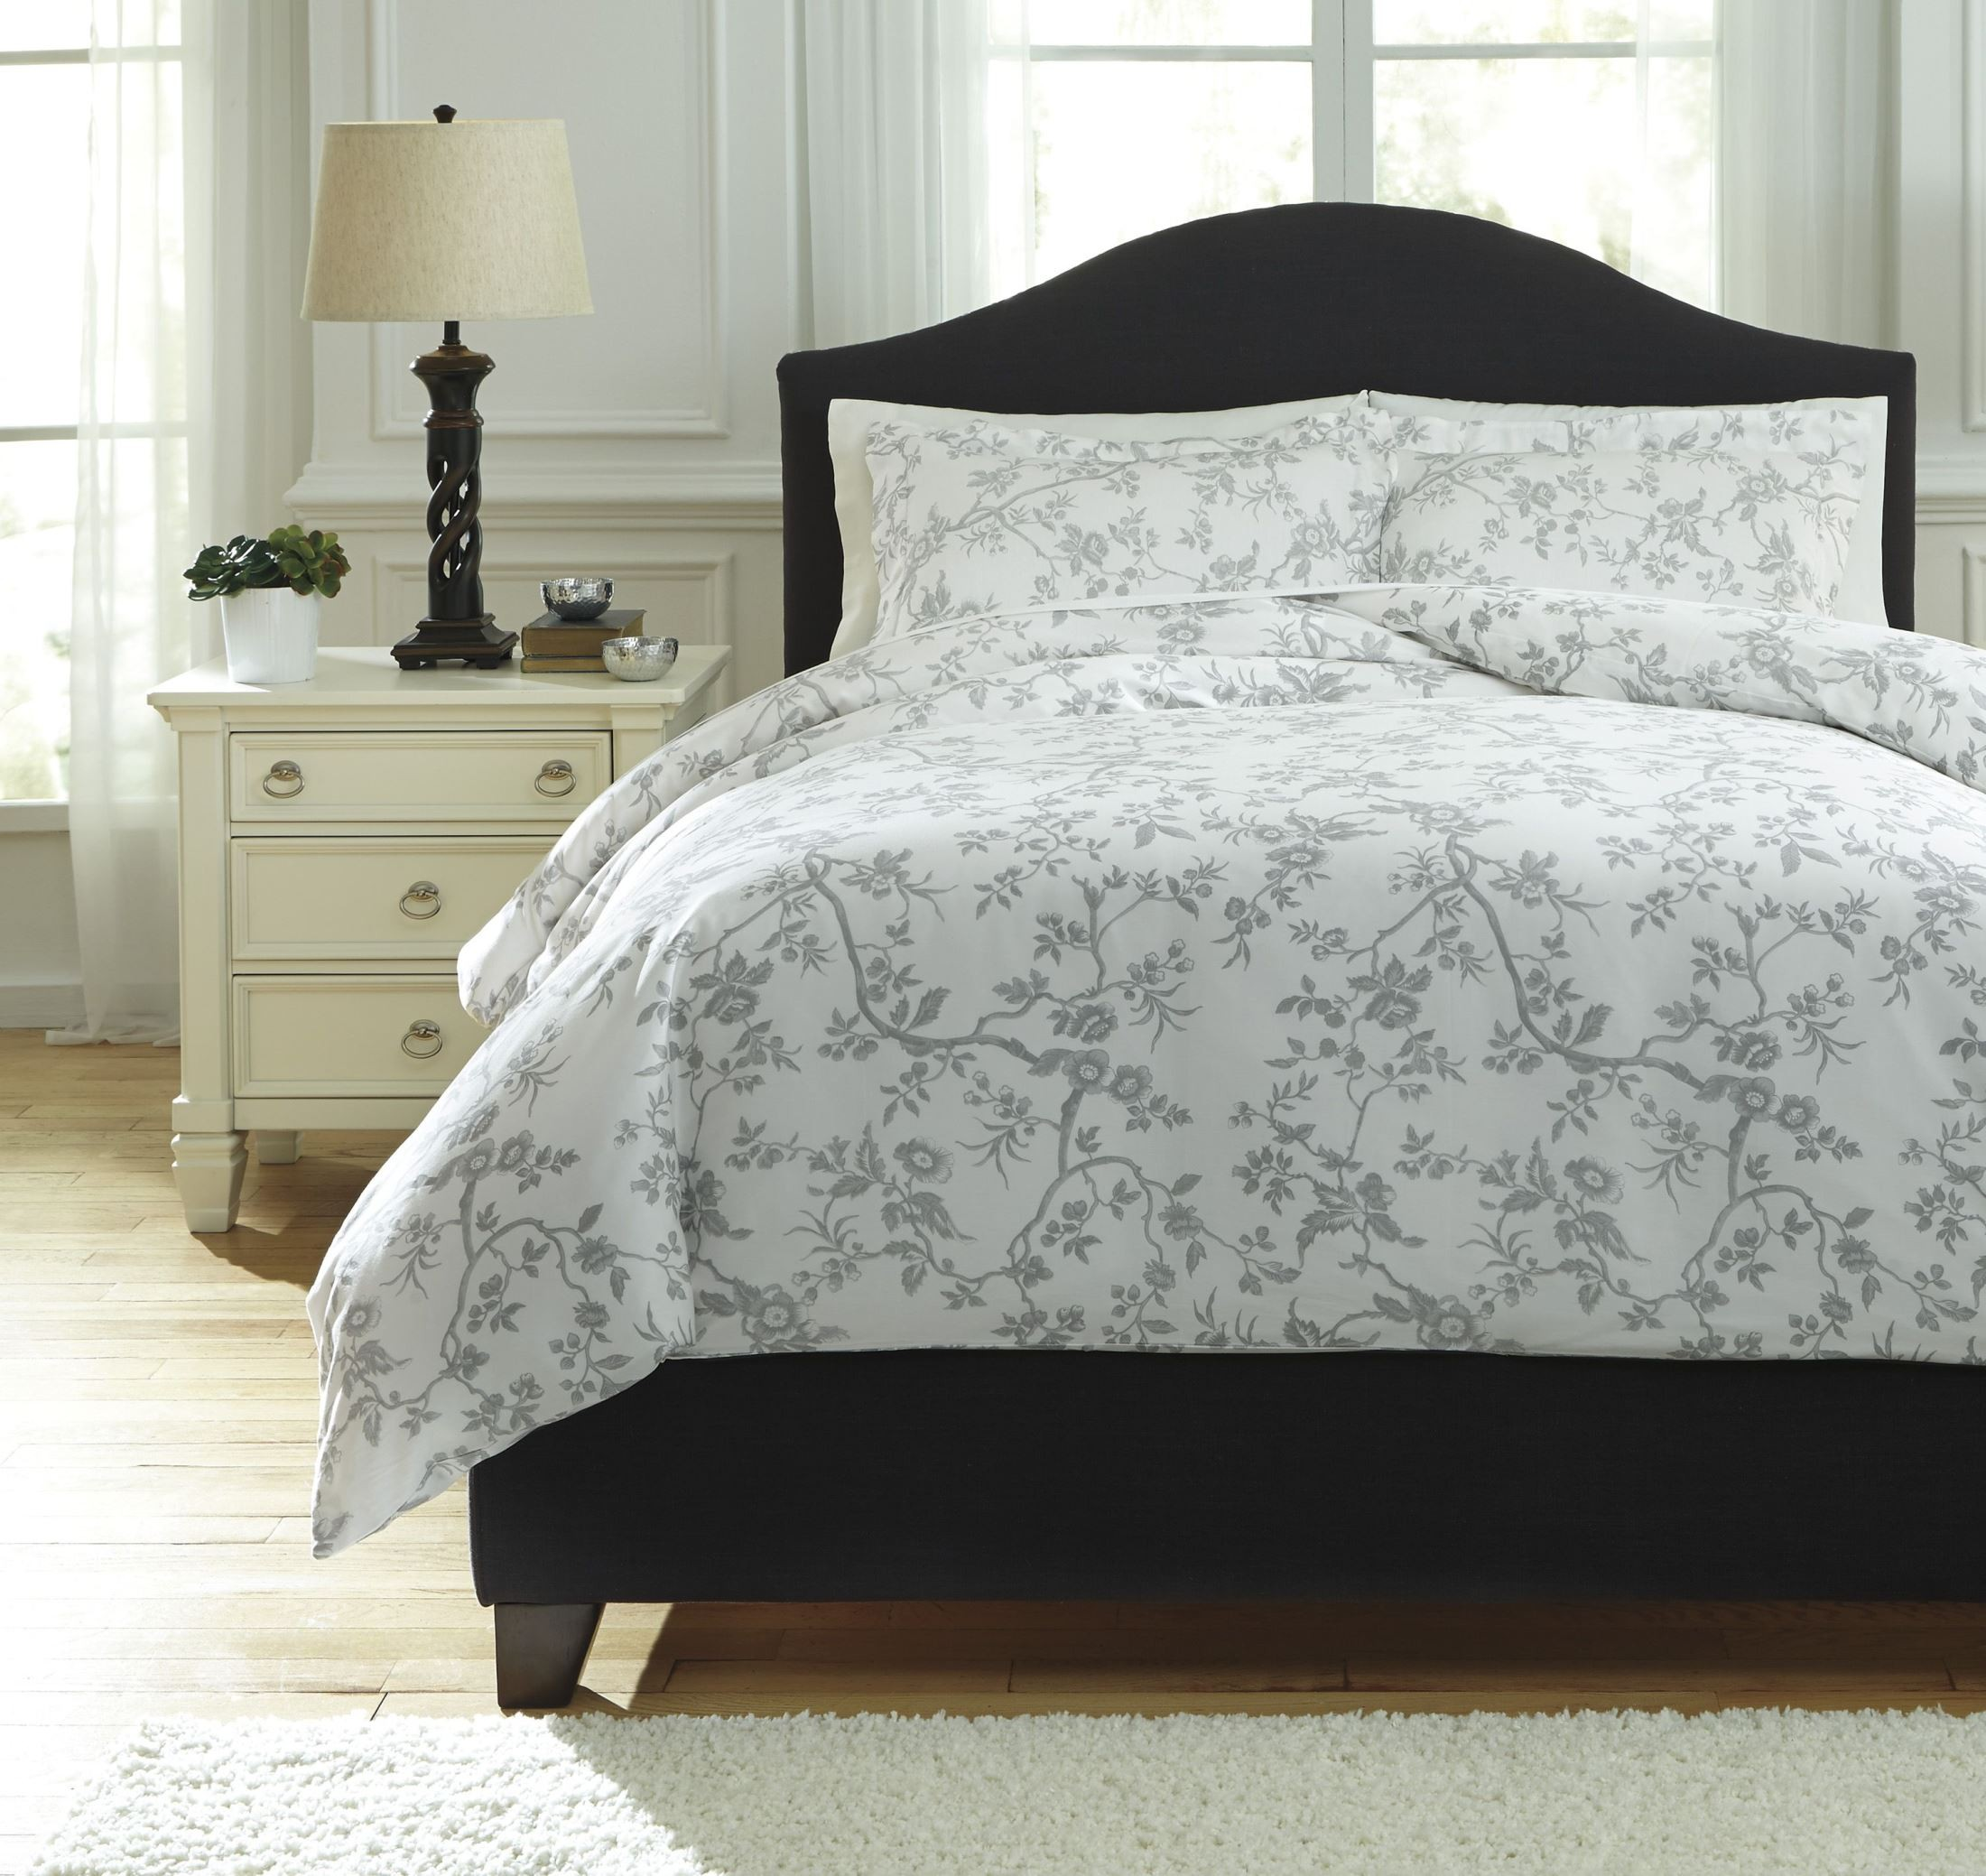 Florina Gray And White King Duvet Cover Set From Ashley